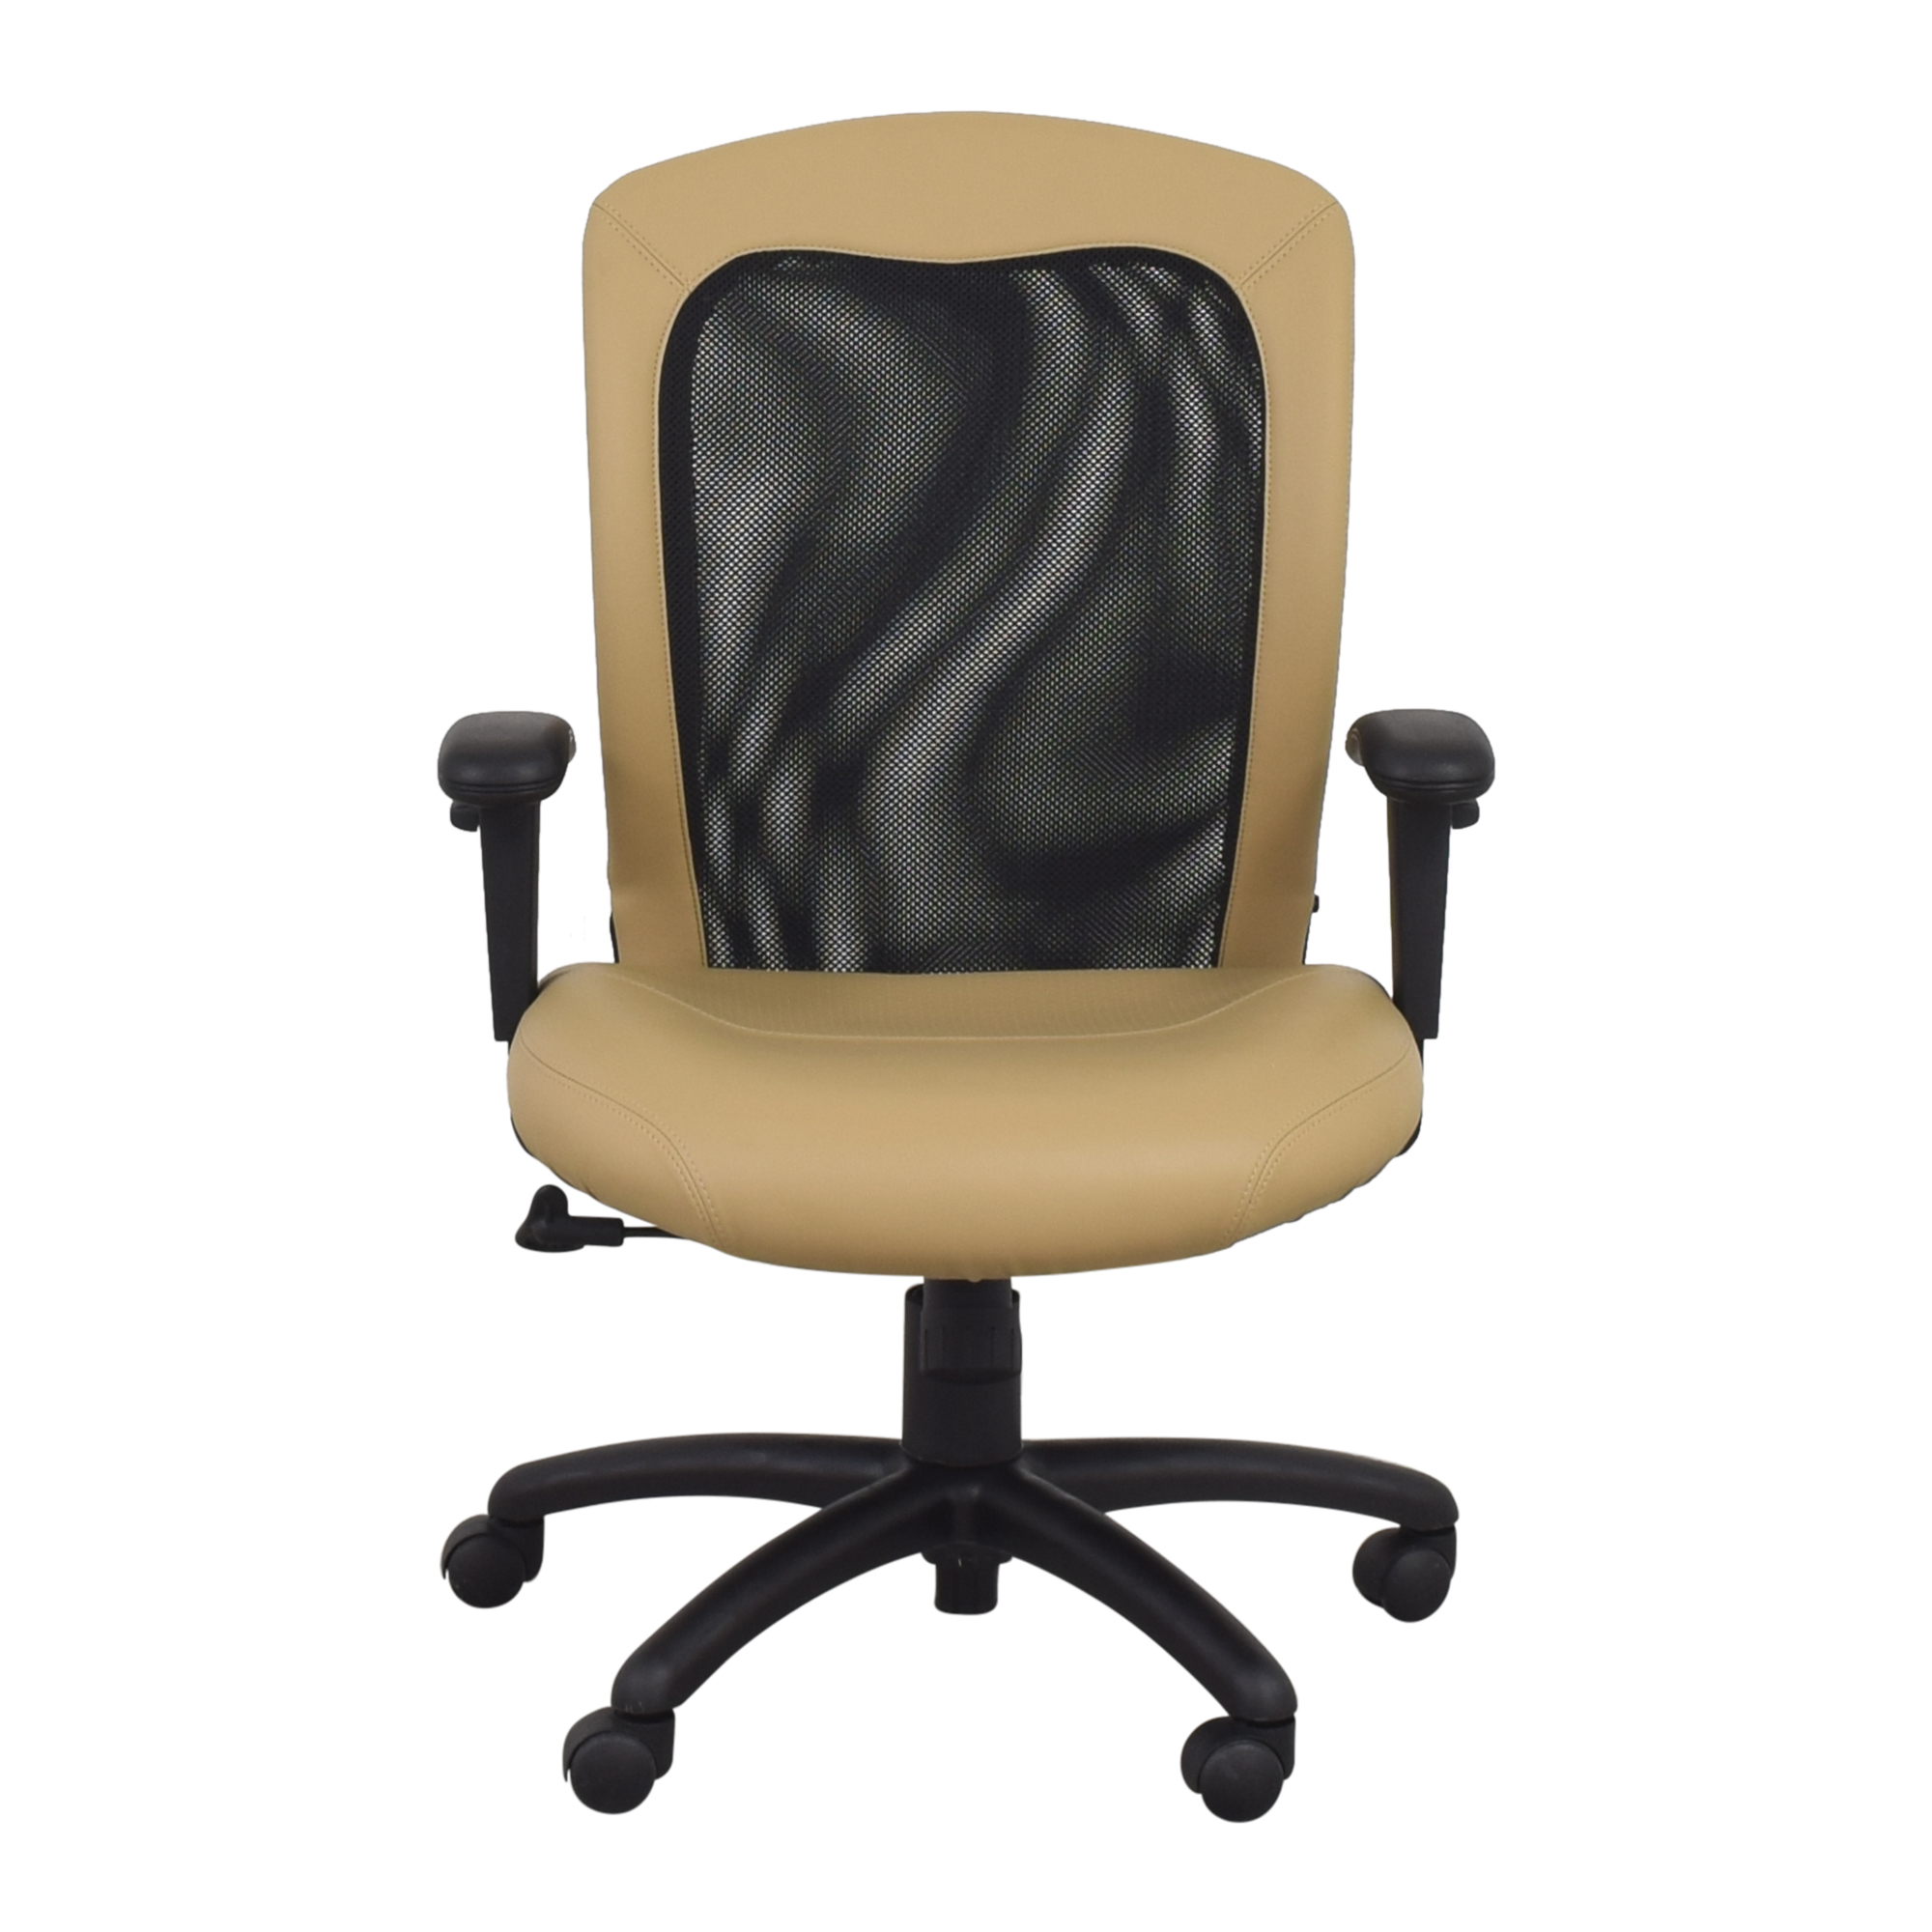 shop Offices to Go Offices to Go Mesh Back Tilter Office Chair online